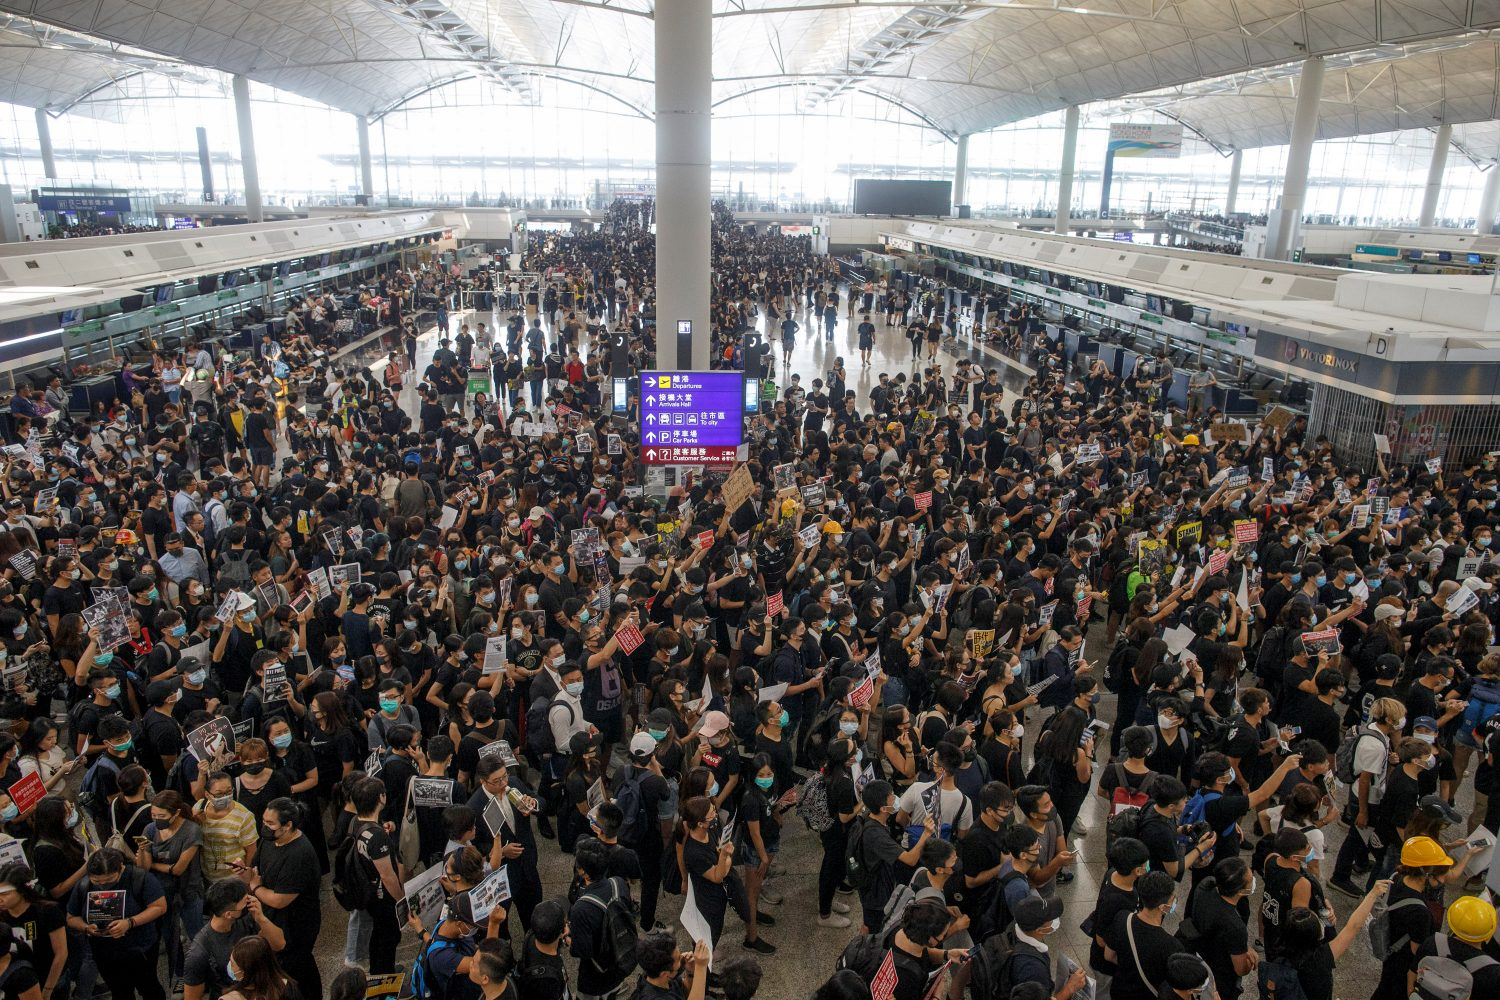 Anti-extradition bill protesters rally at the departure hall of Hong Kong airport in Hong Kong, China August 12, 2019. REUTERS/Thomas Peter